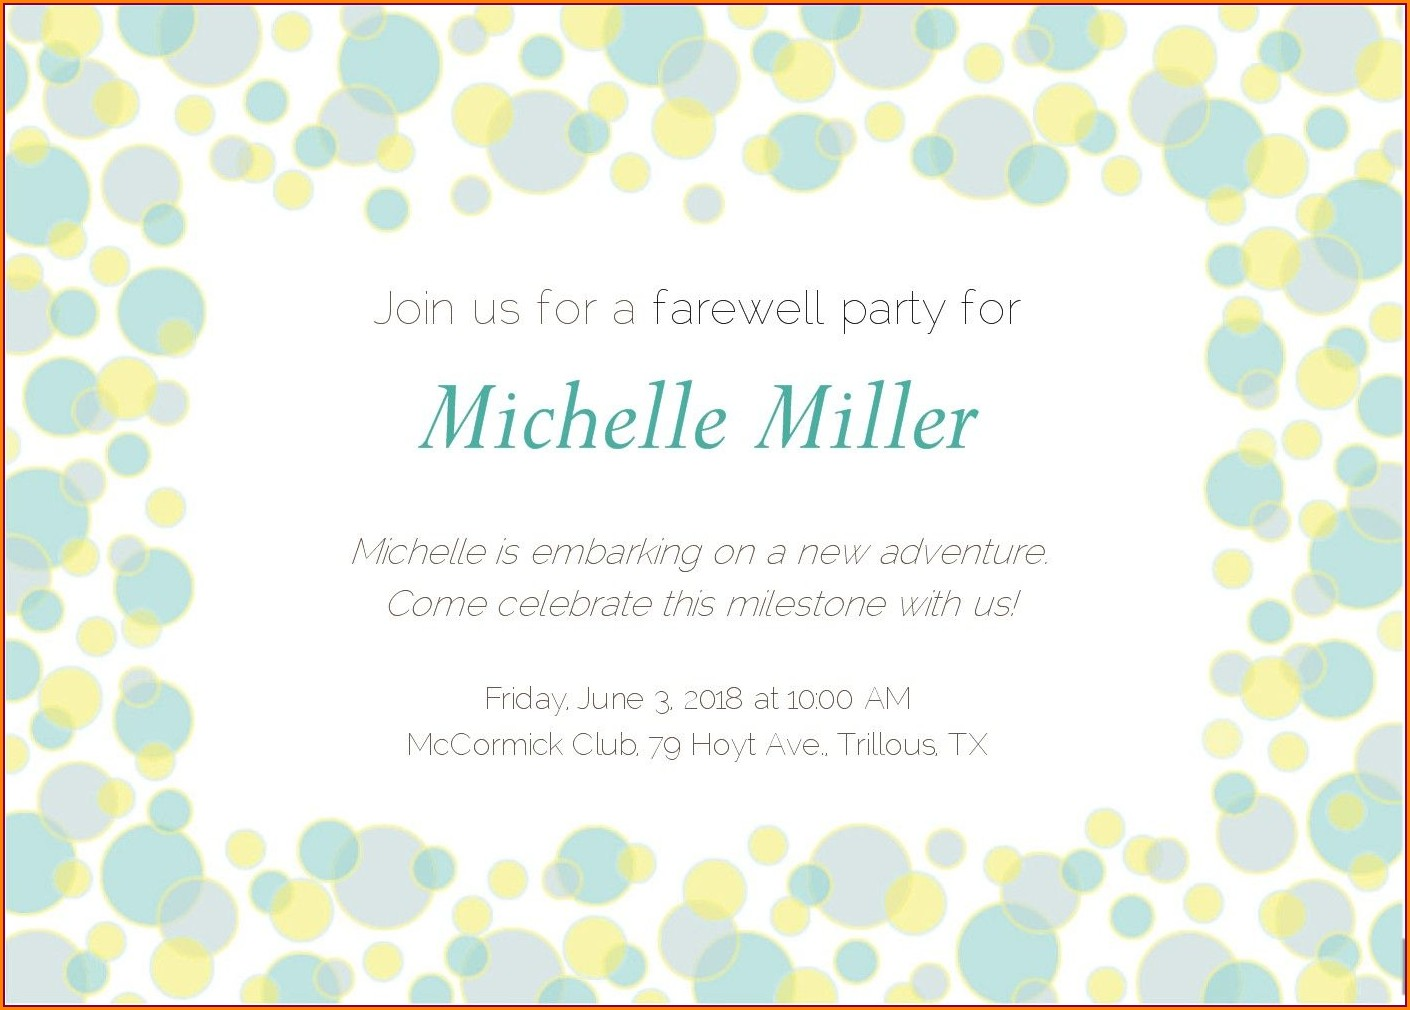 Employee Farewell Lunch Email Invitation For Coworker